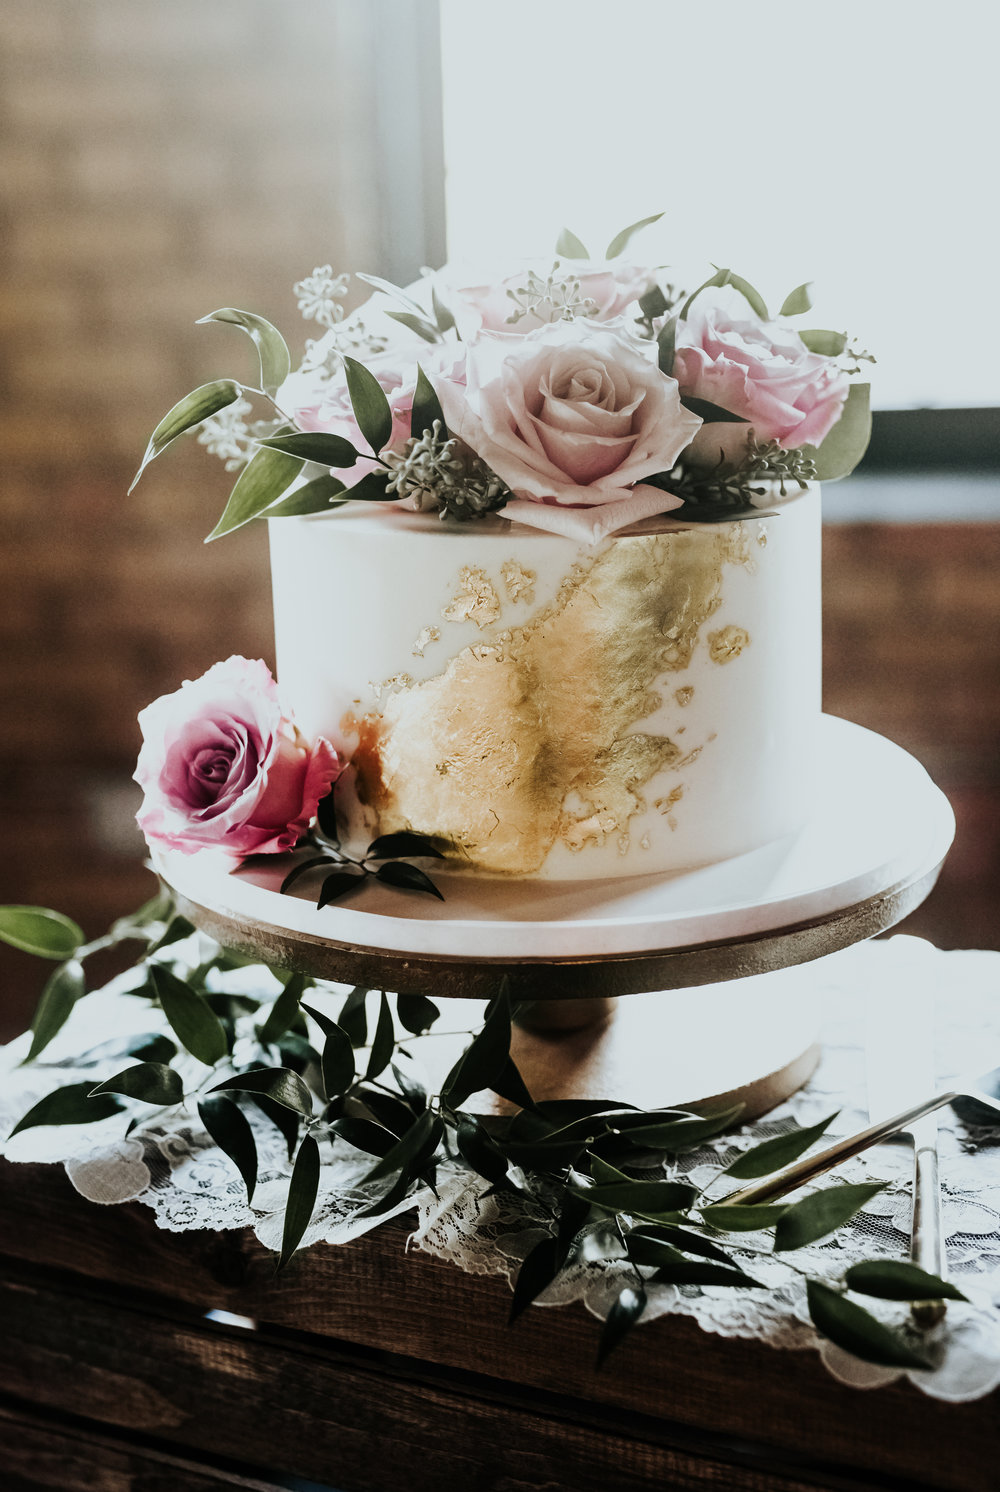 One of my favorite cakes of all time. Sweet and simple, yet undeniably elegant. 23K edible gold leaf adds a touch of luxury to any design!